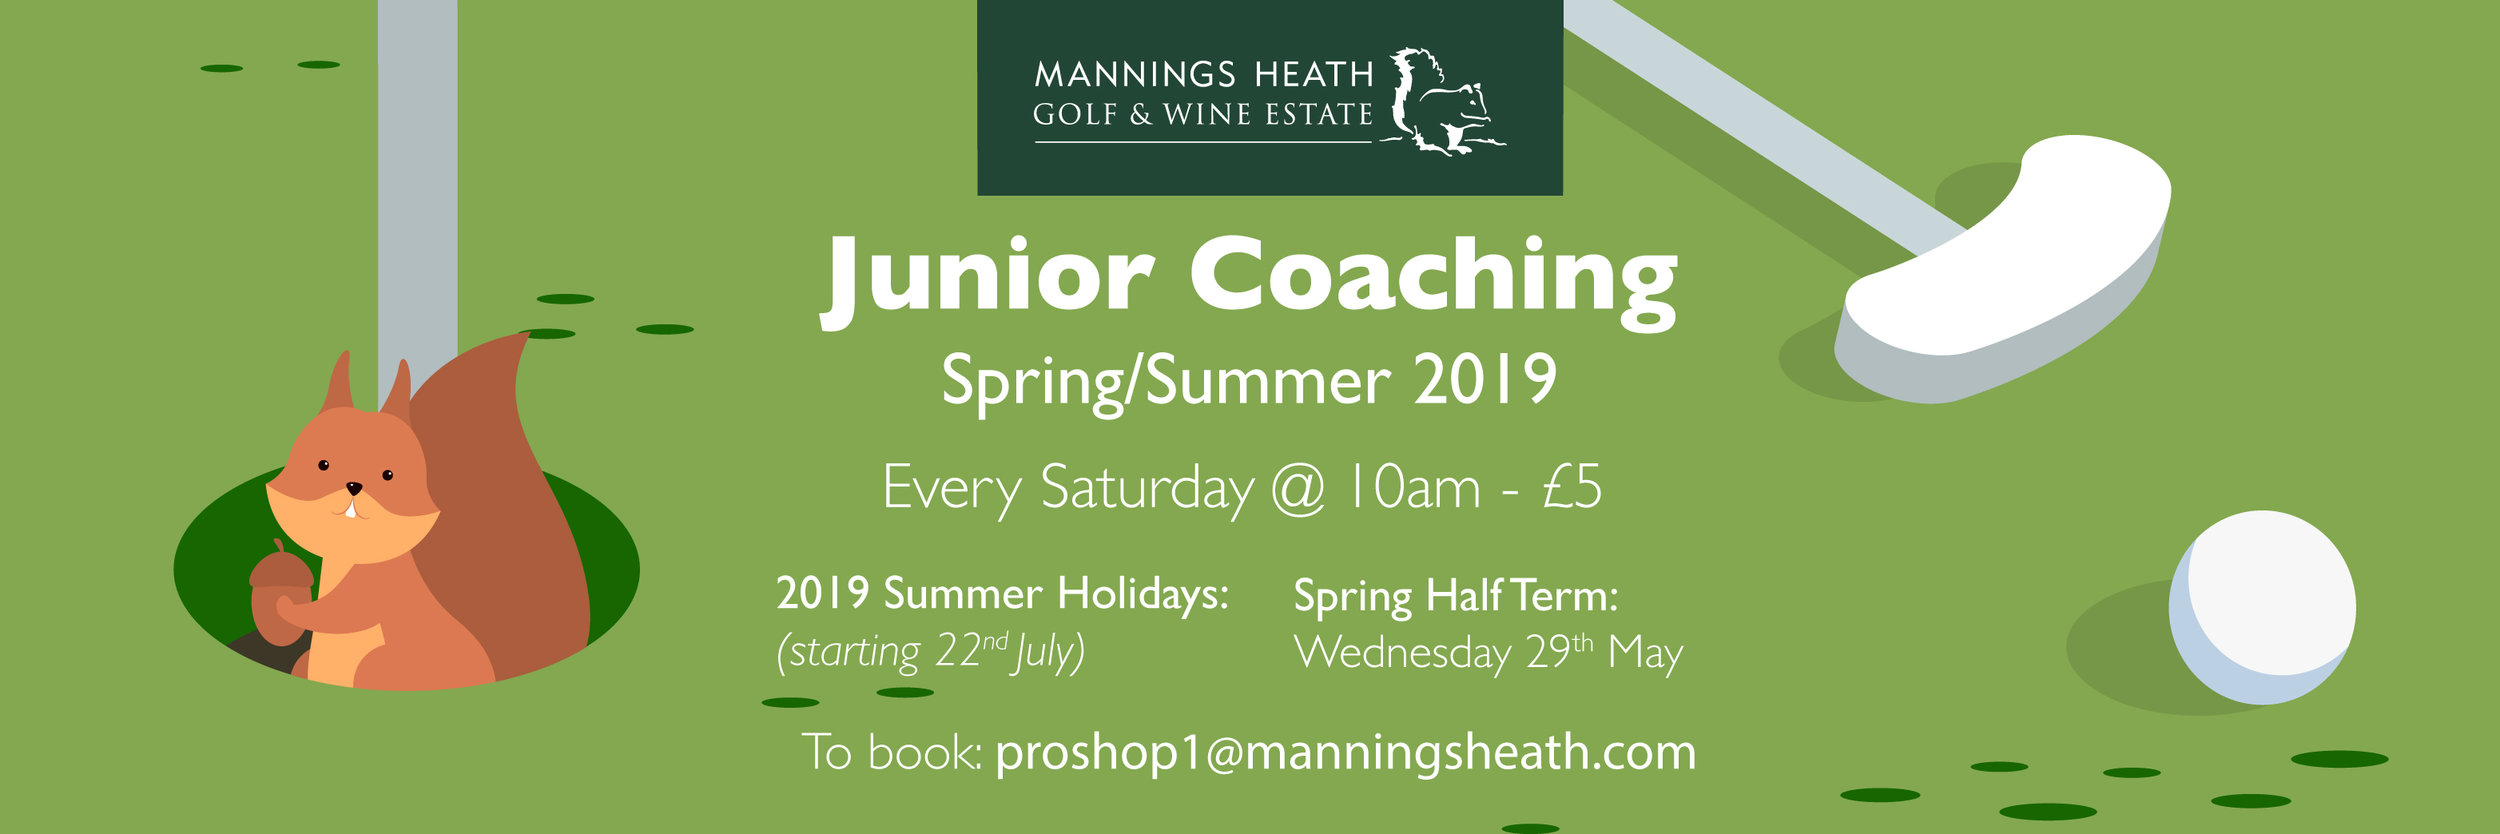 Junior Coaching Spring Summer 2019.jpg